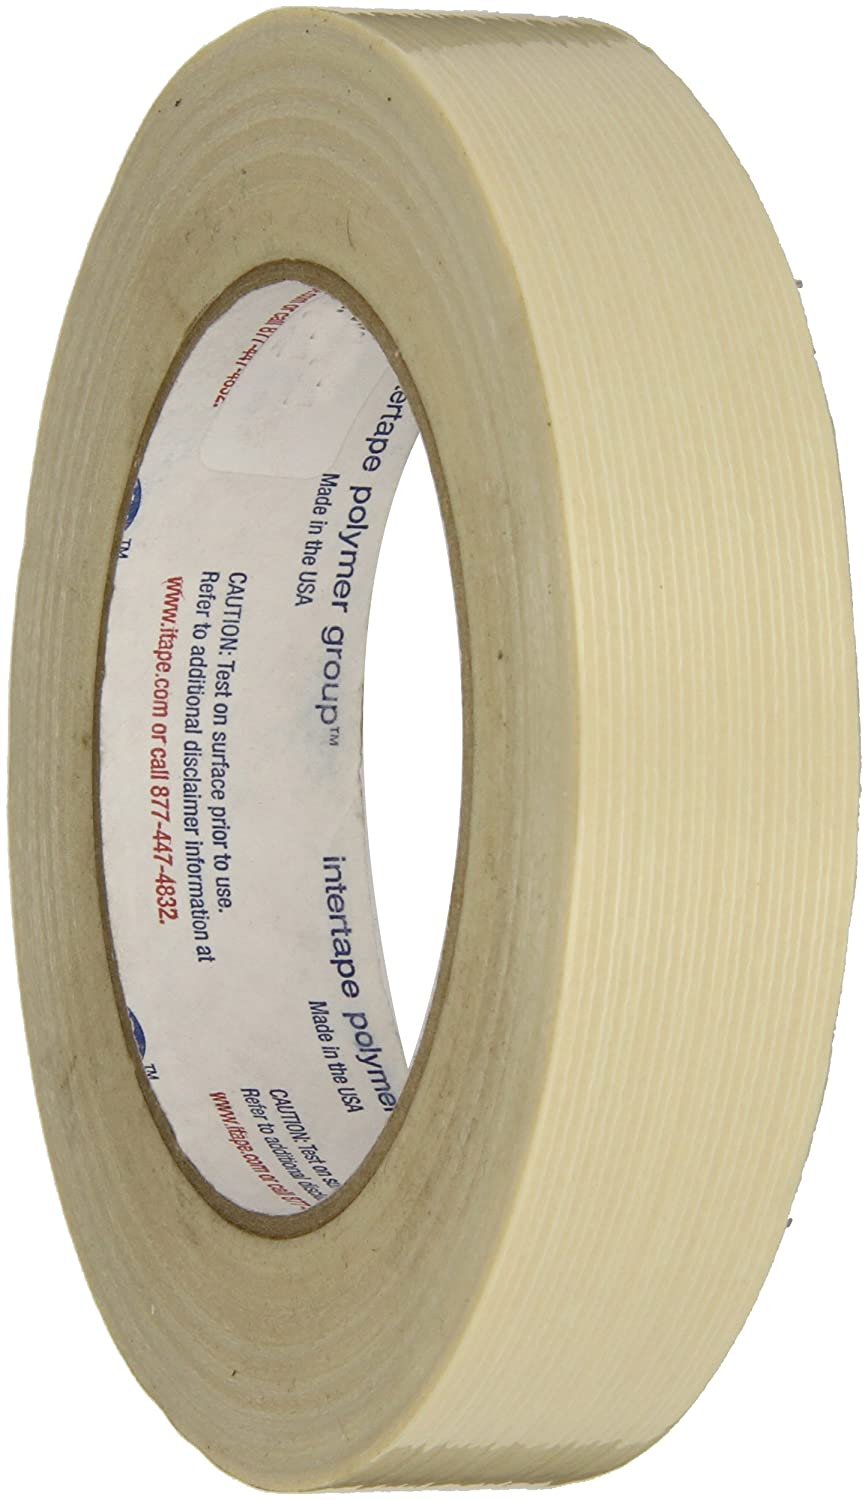 Intertape Polymer Group RG3 131lbs/in Fiberglass Reinforced Polyester Backed Filament Tape, 18mm X 54.8M (Case of 48 Rolls) by Intertape B009AFGL7M